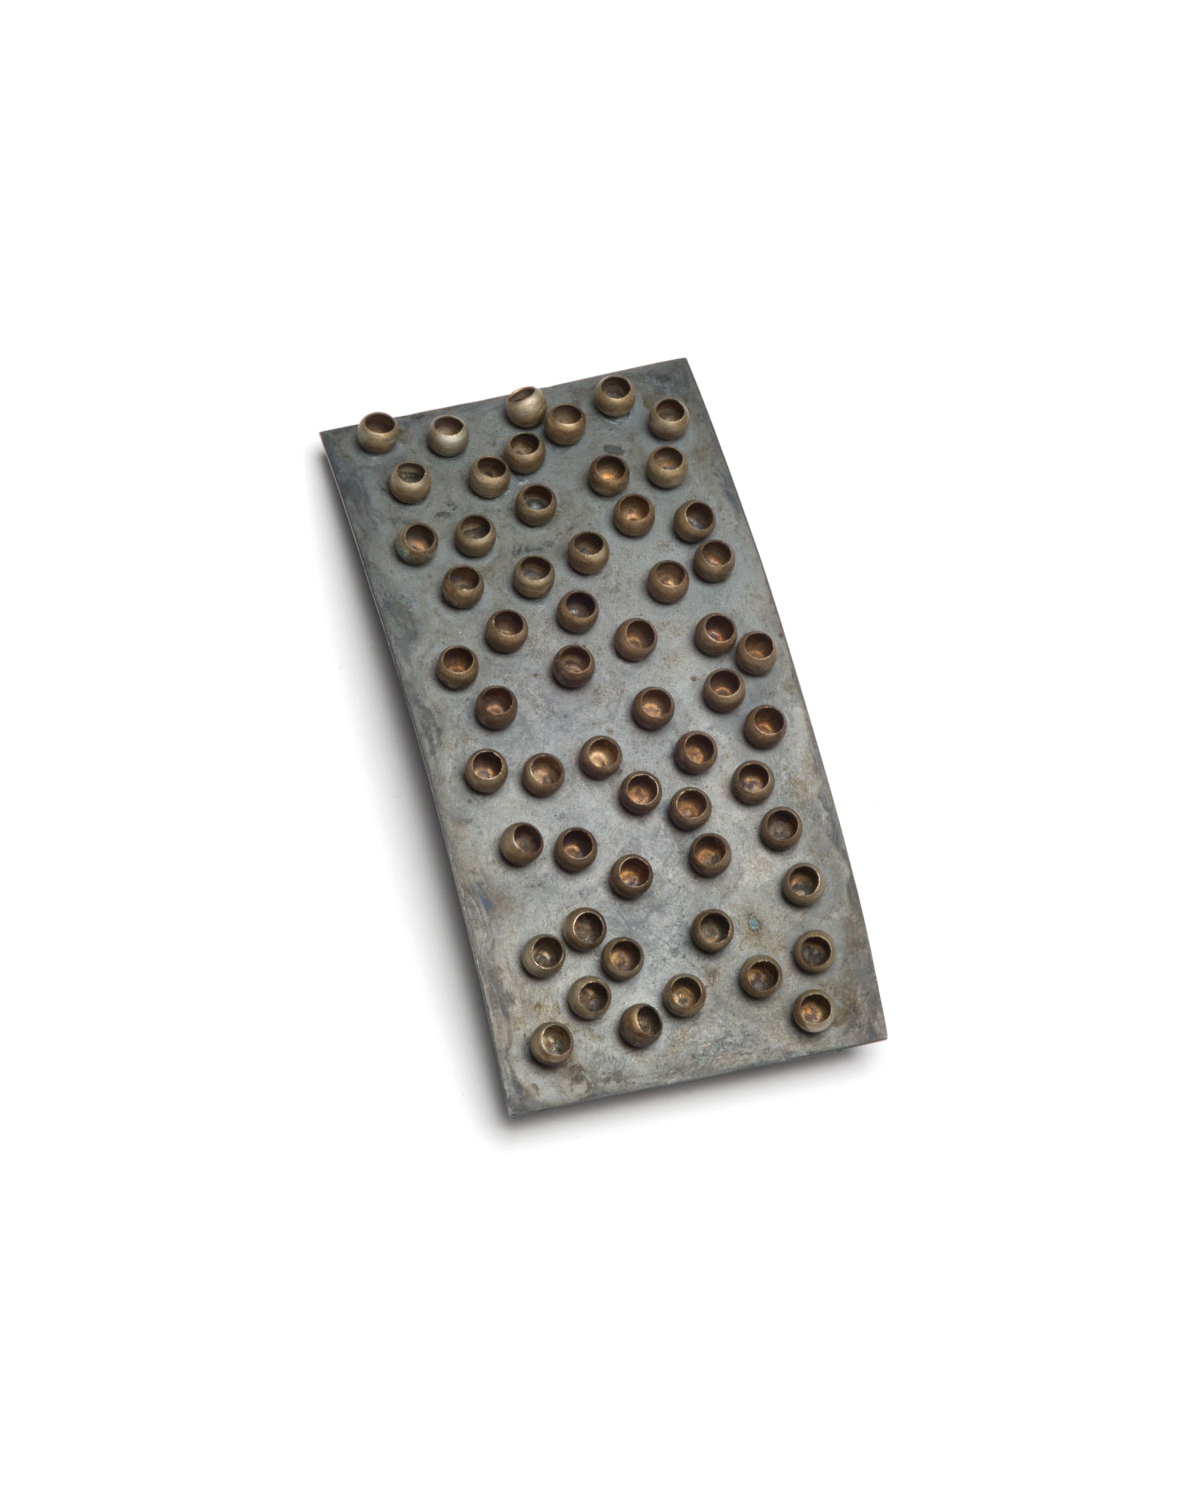 Winfried Krüger, untitled, 2006, brooch; oxidised silver, brass, 90 x 45 mm, €1210